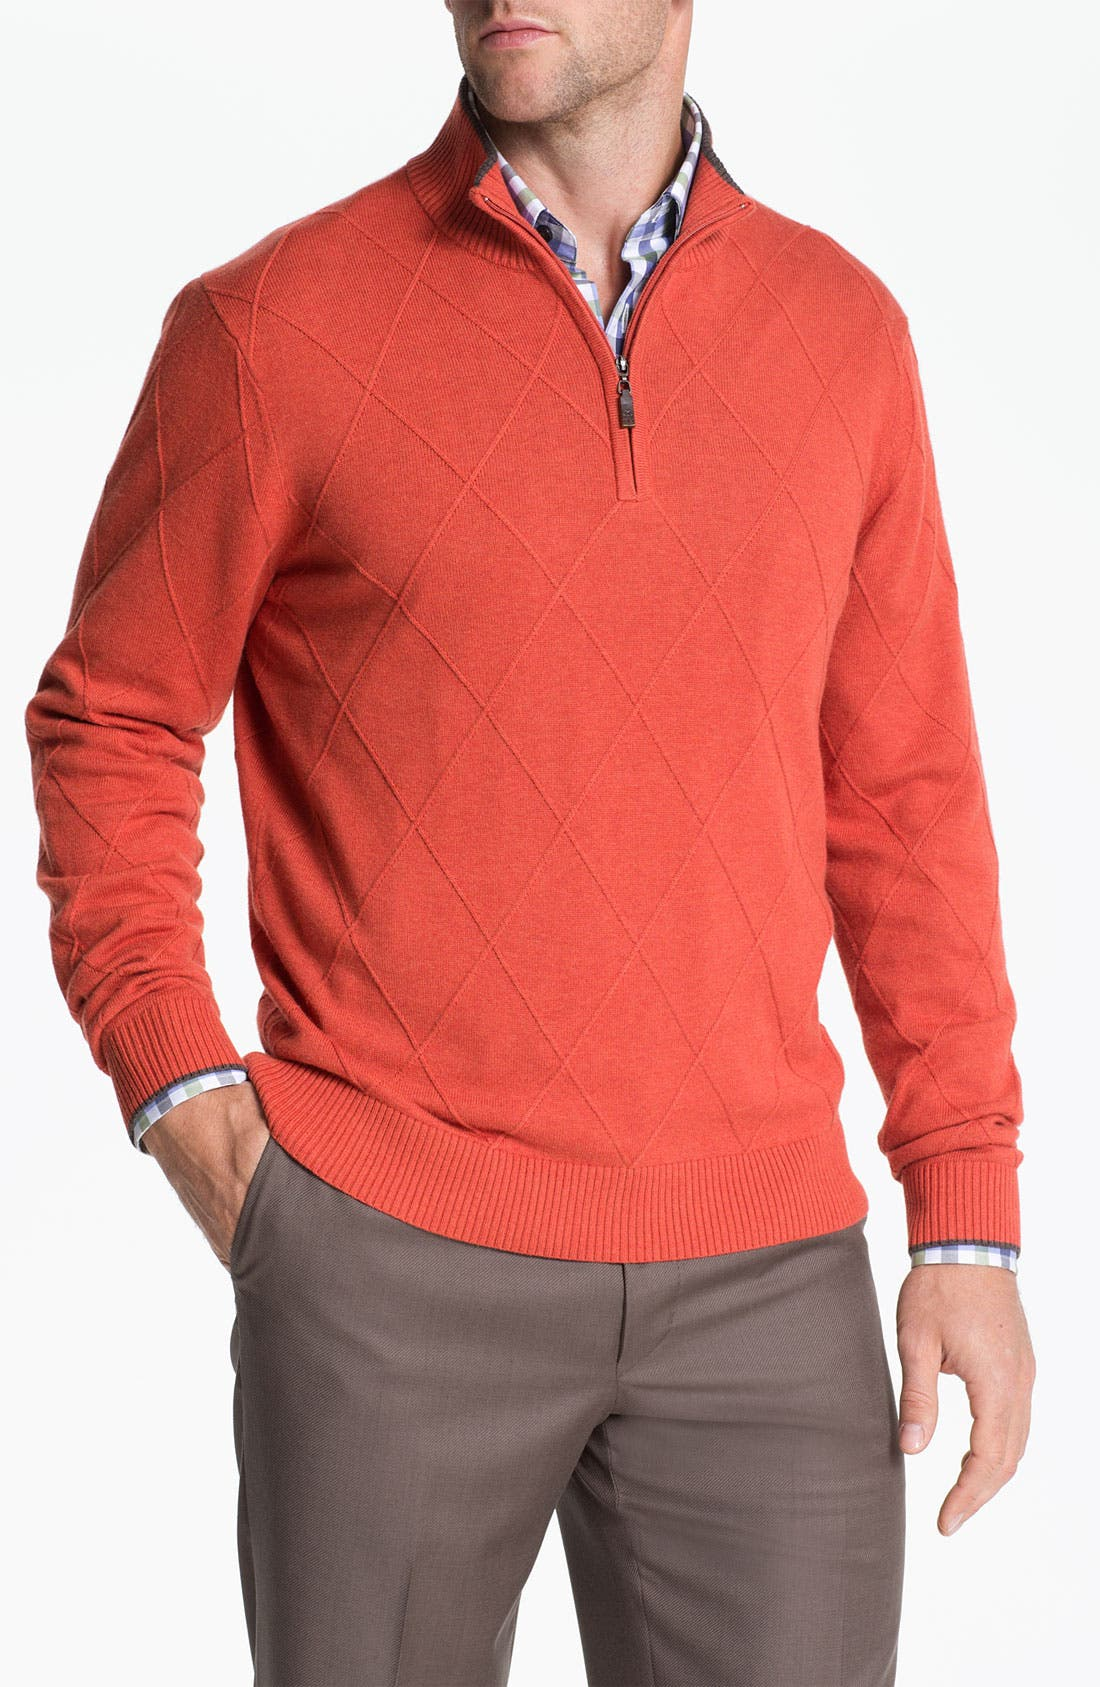 Main Image - Robert Talbott Cotton & Cashmere Quarter Zip Sweater